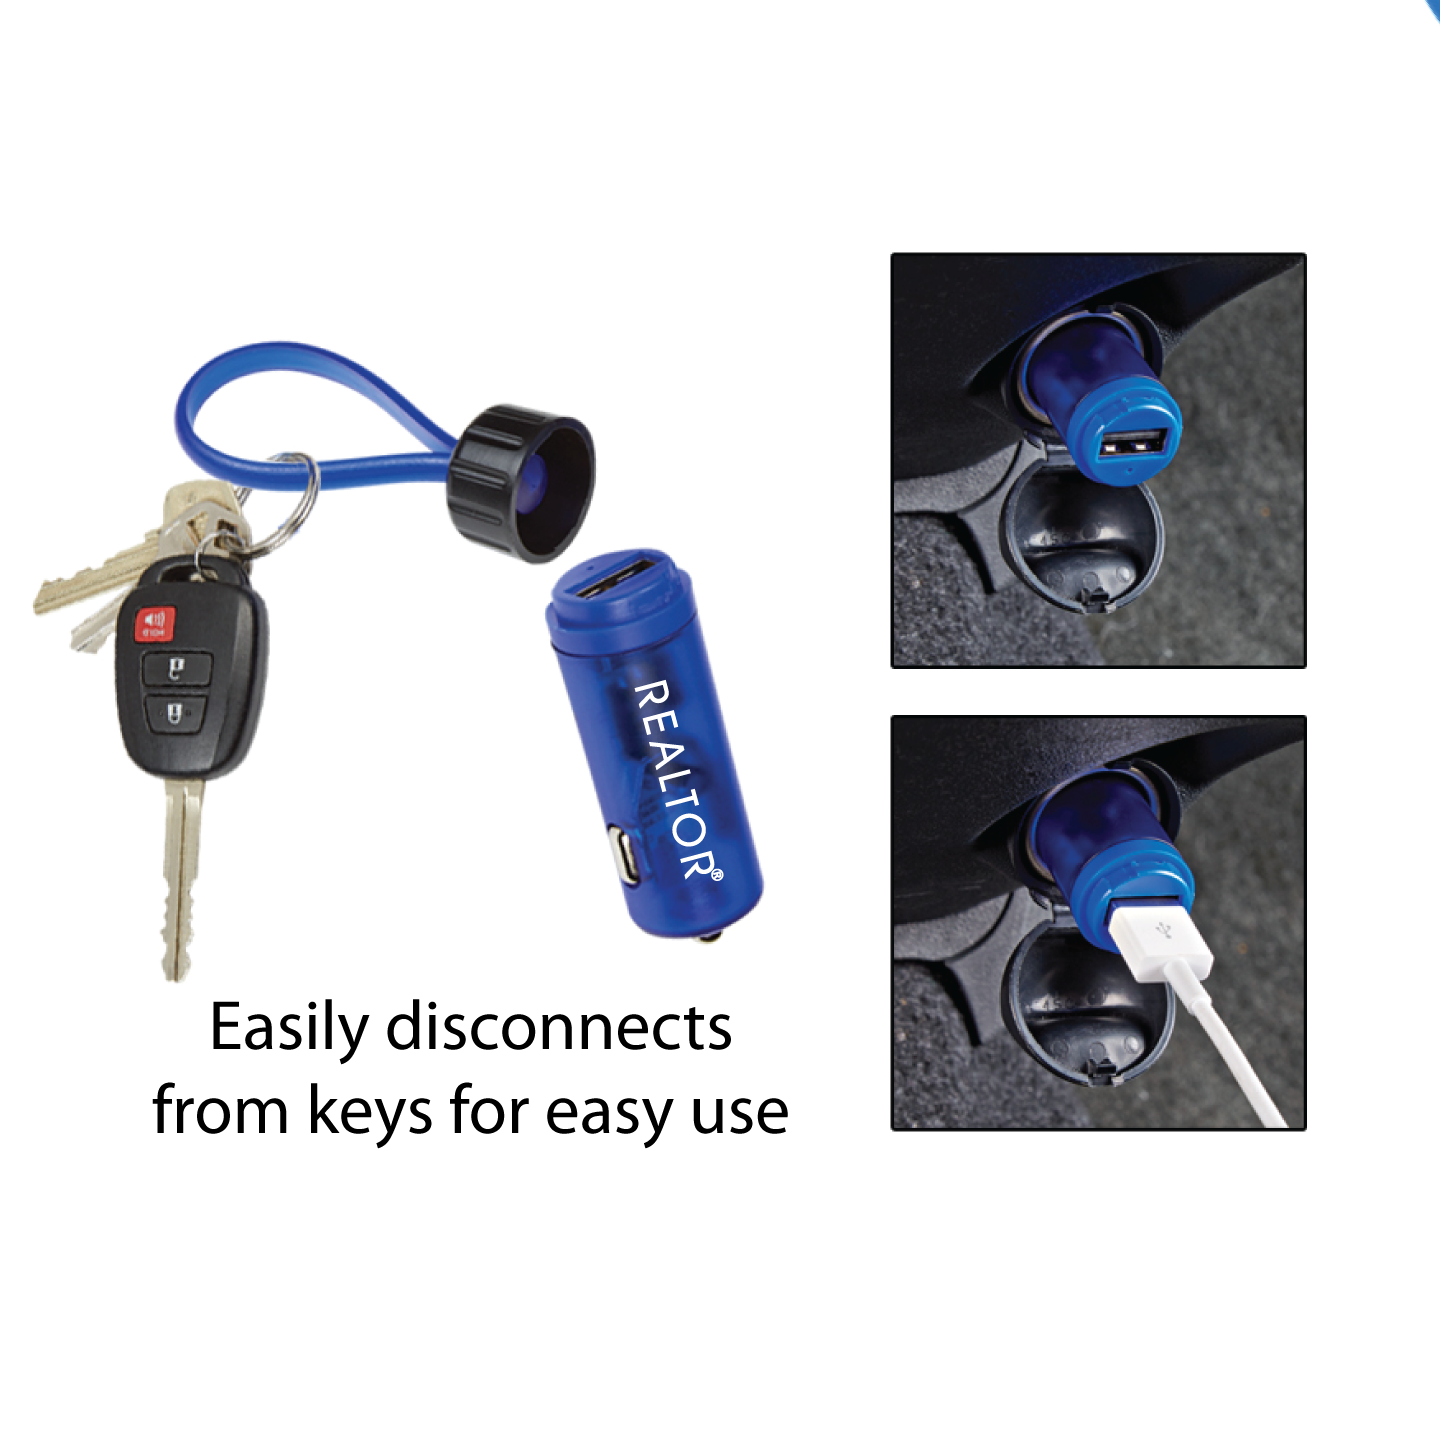 USB Car Charger Key Strap Keychain, Keychains, LED, Gift, Give-away, keys, Key, USB, Charger, Charging, Car